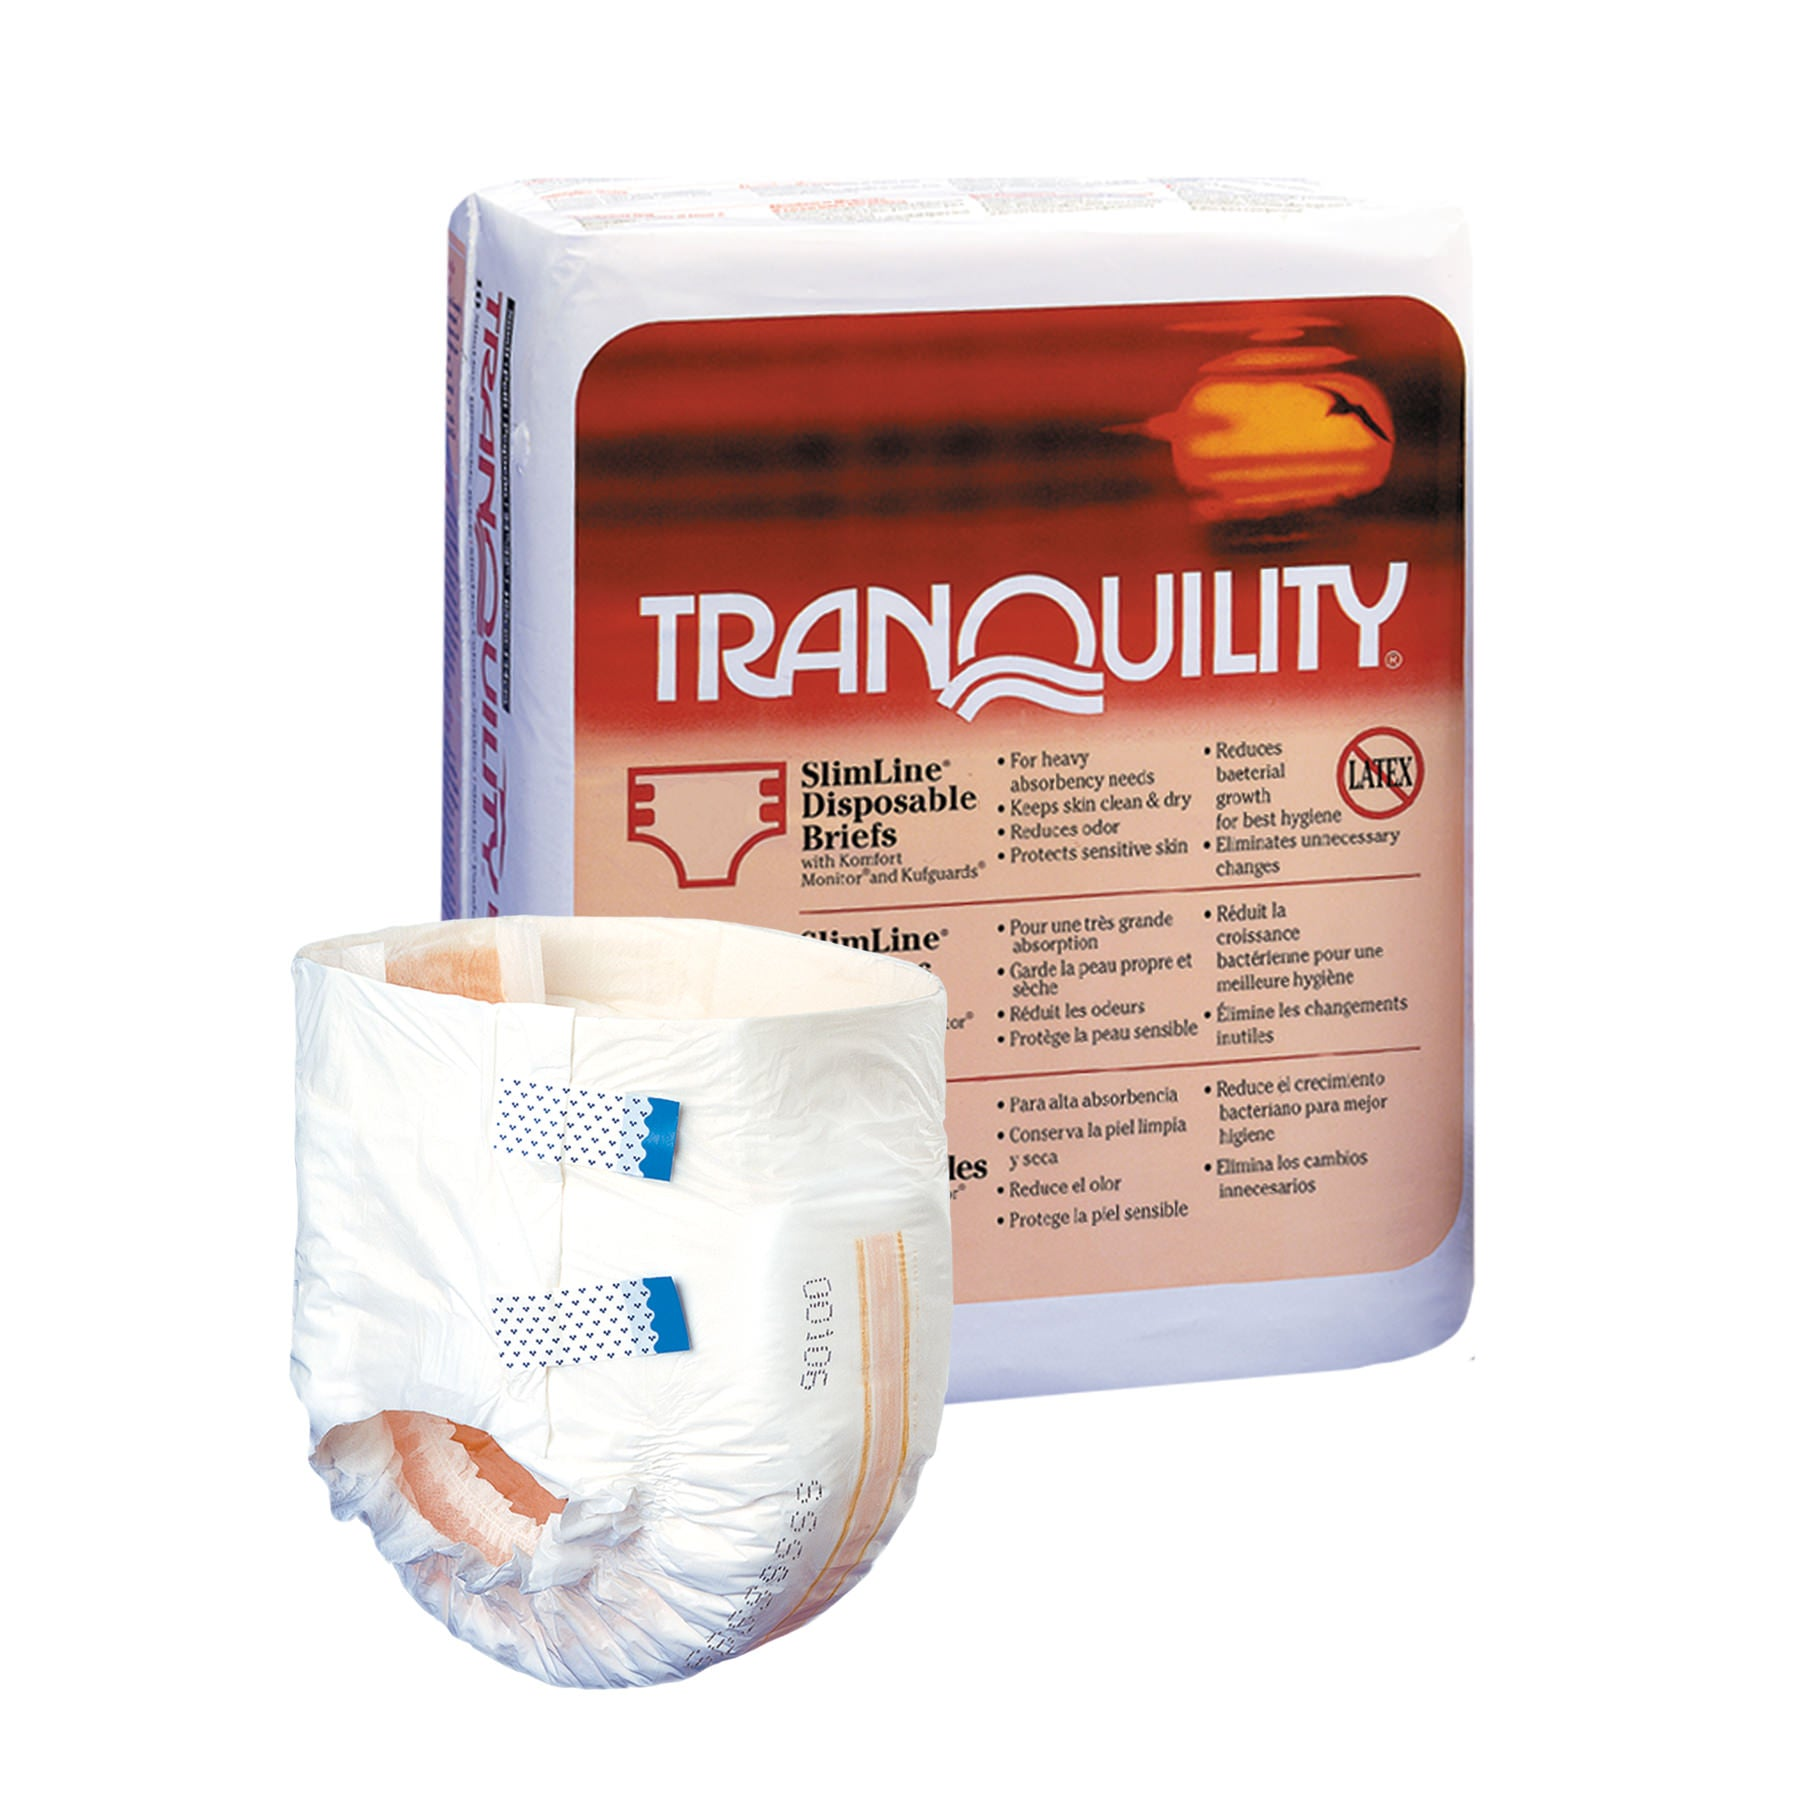 Disposables-Tranquility SlimLine Disposable Briefs